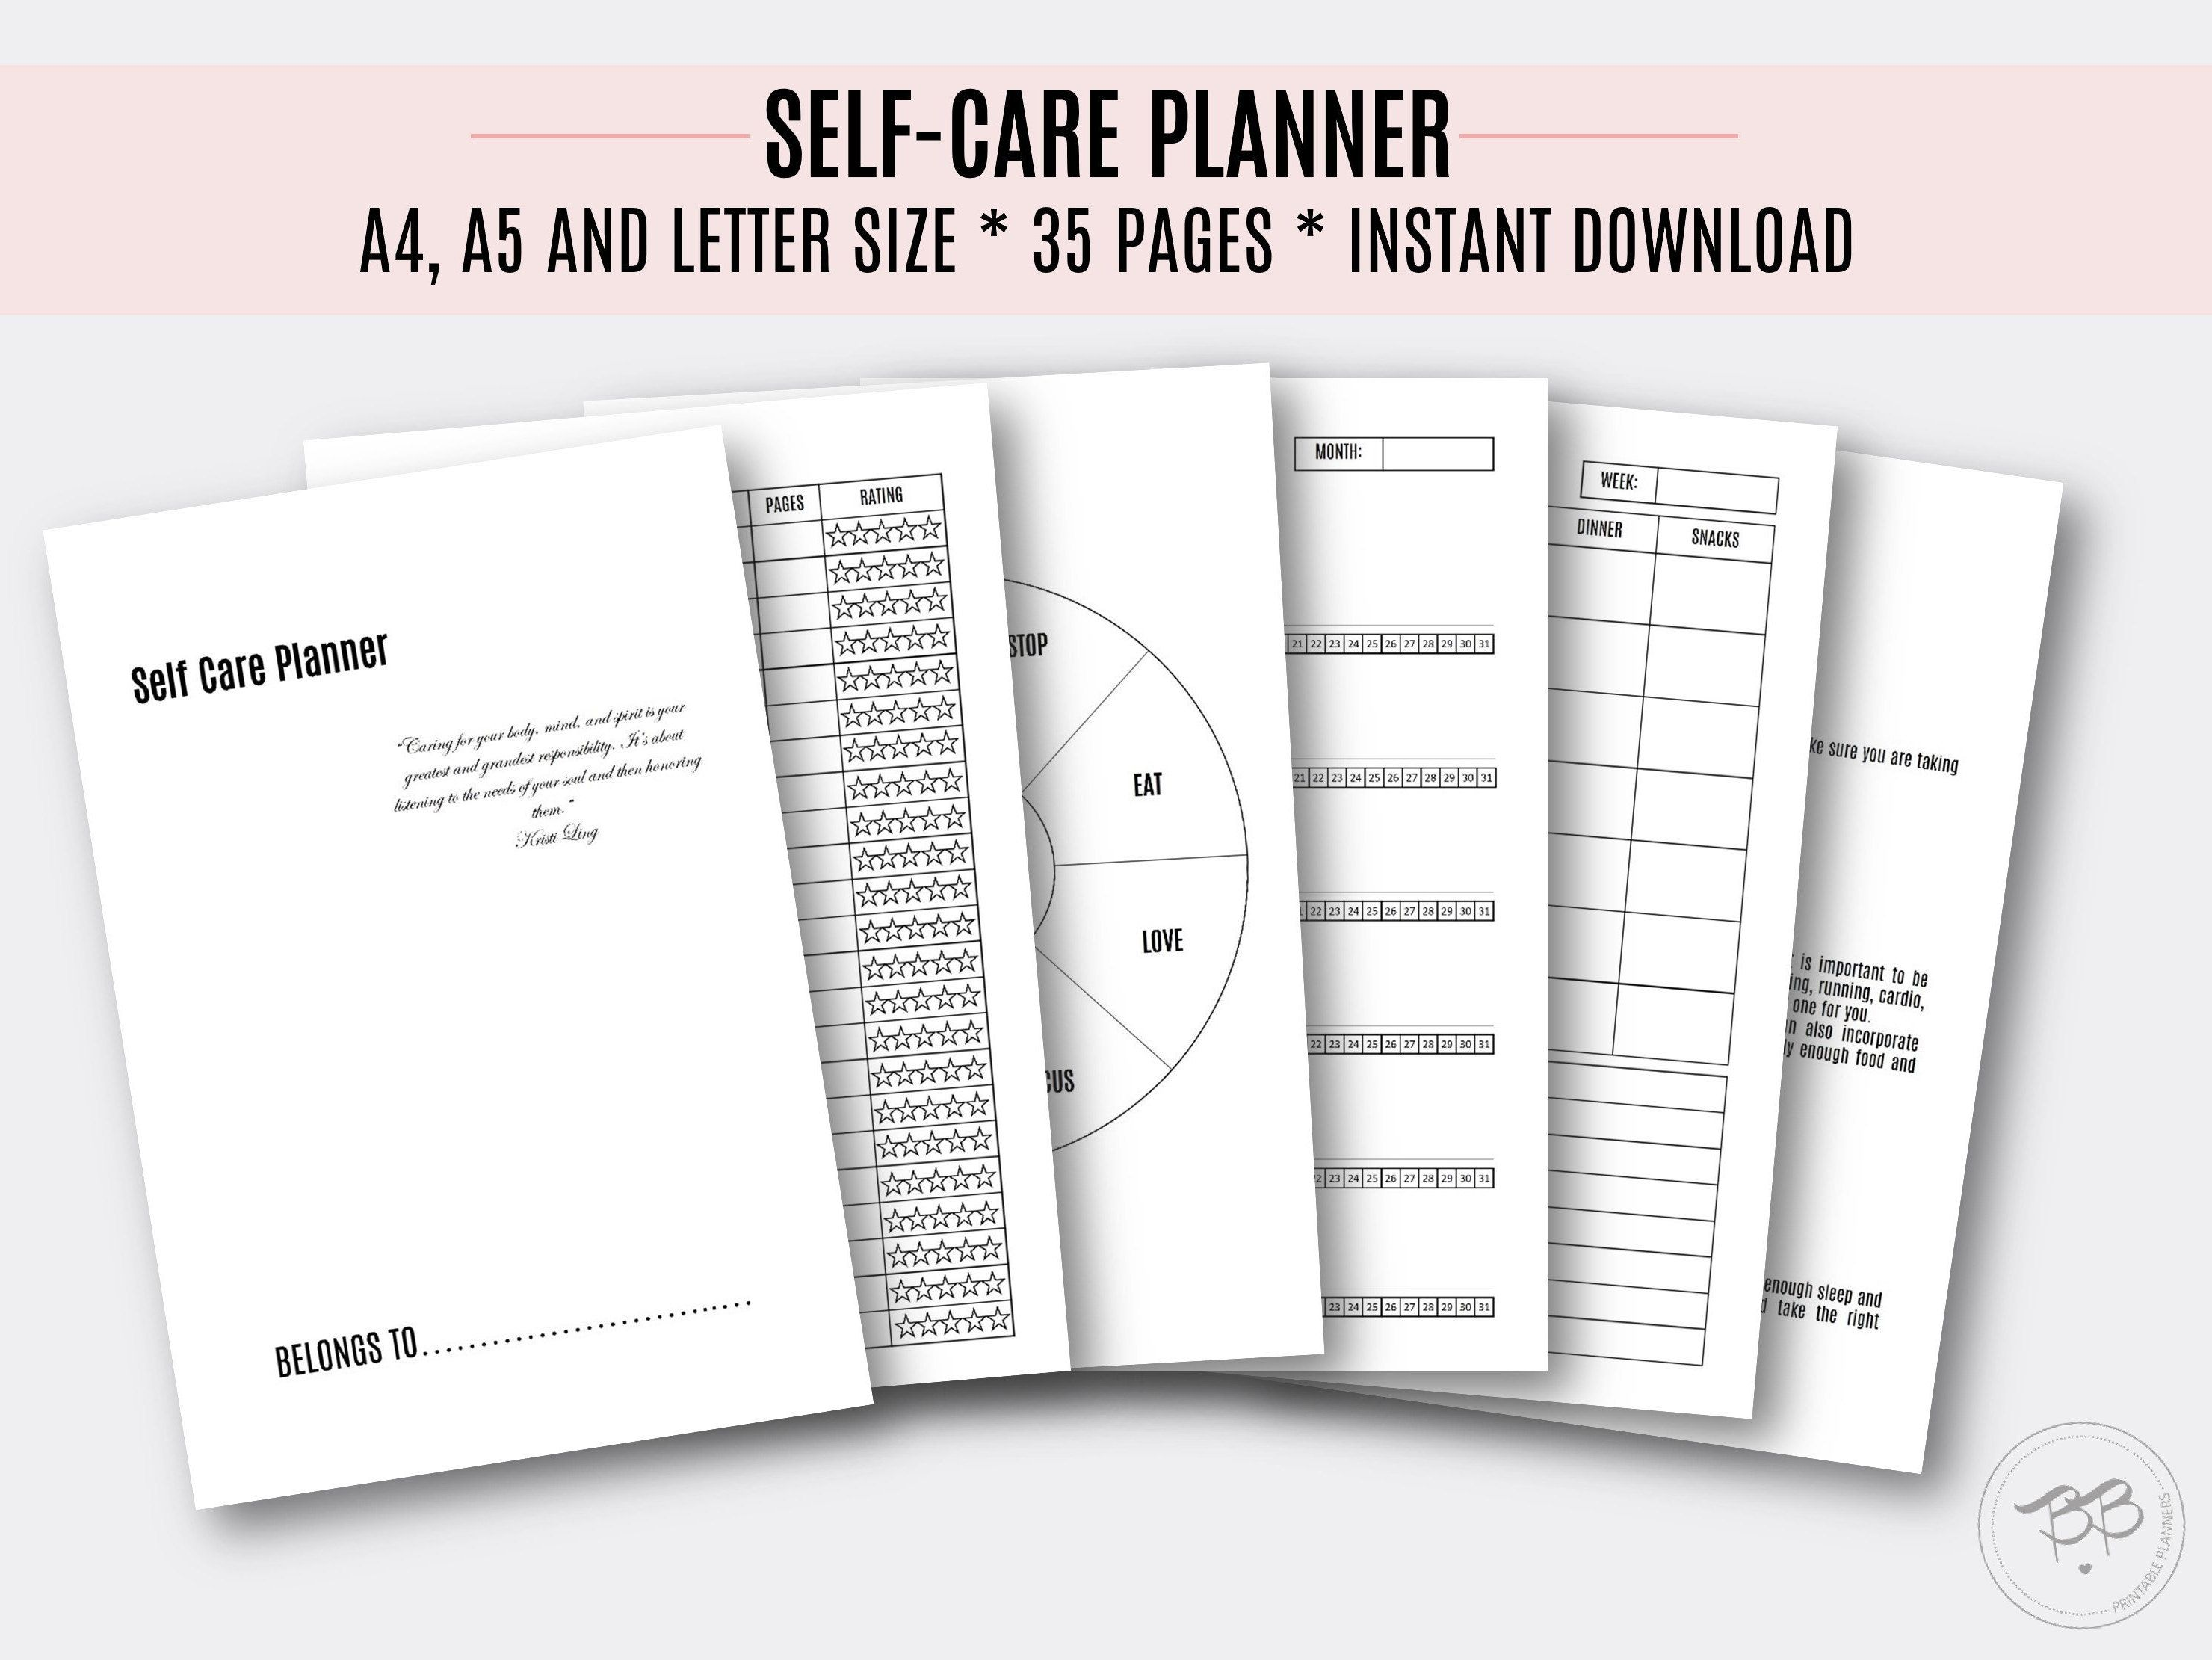 Selfcare Planner/ 3 sizes/ Printable PDF/ A4, A5, Letter